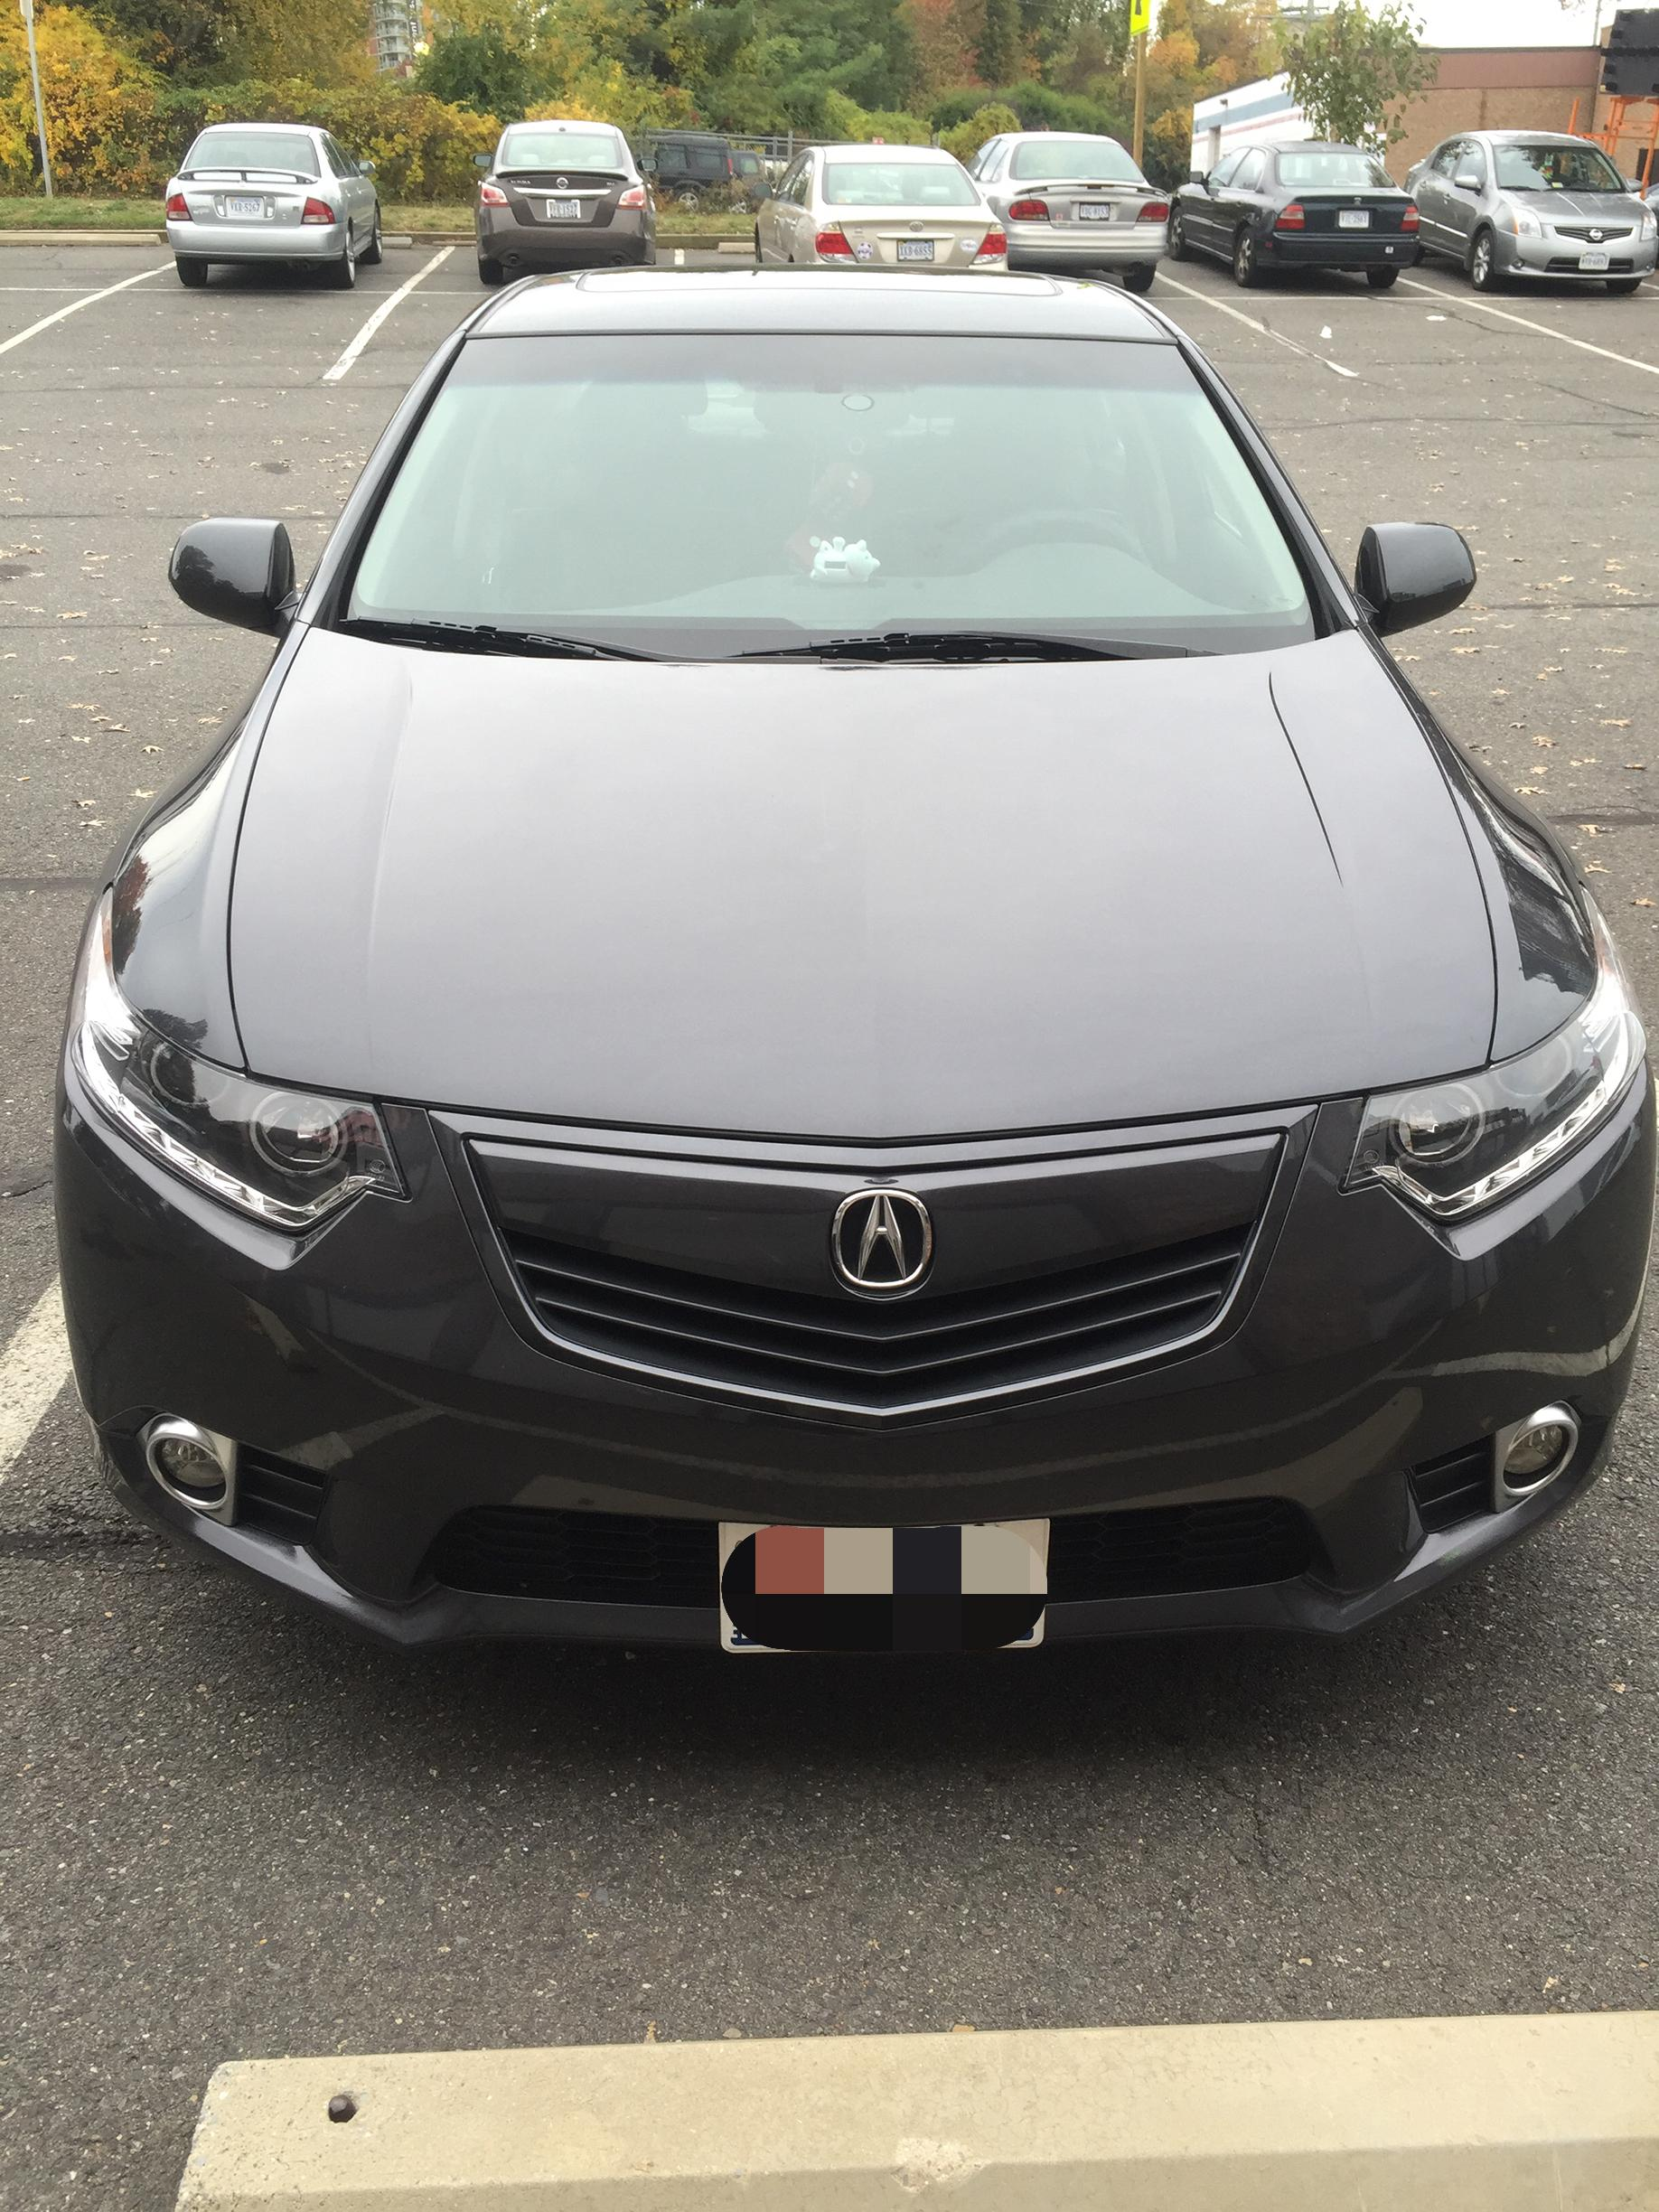 Paint Match My Grill Or Leave As Stock Acura TSX Forum - 2018 acura tsx grille